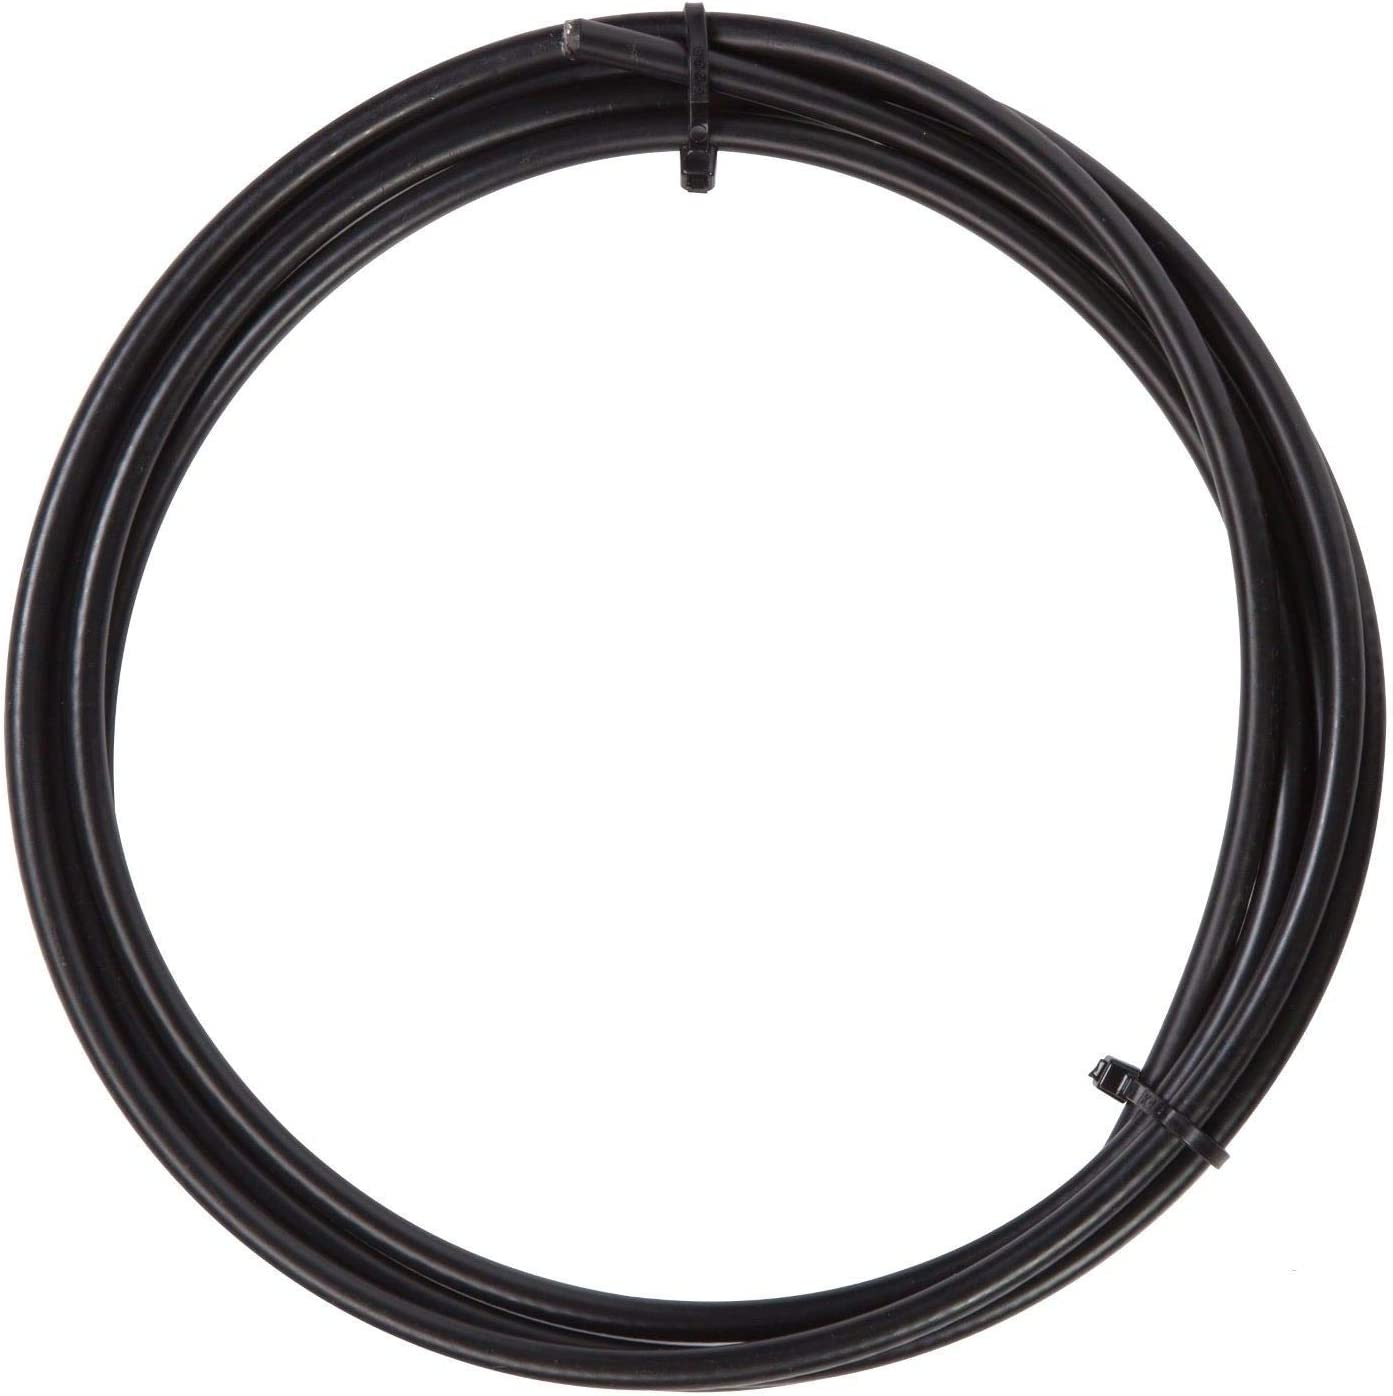 Official jagwire outer cable change black quality new bike 4mm